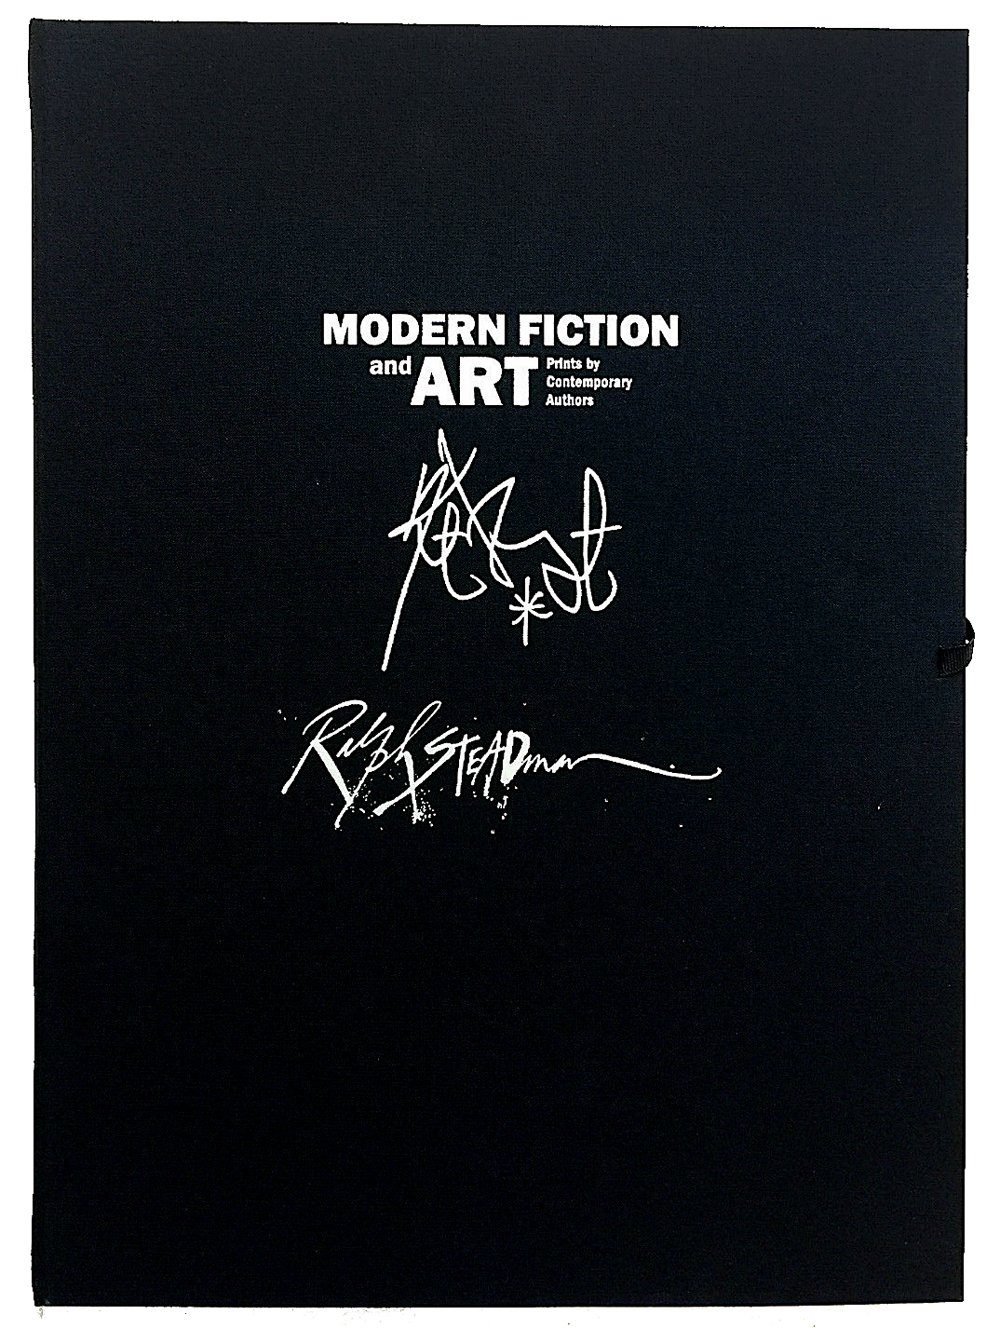 modern fiction and art prints by contemporary authors kurt vonnegut ralph steadman portfolio of two signed prints and a signed catalogue